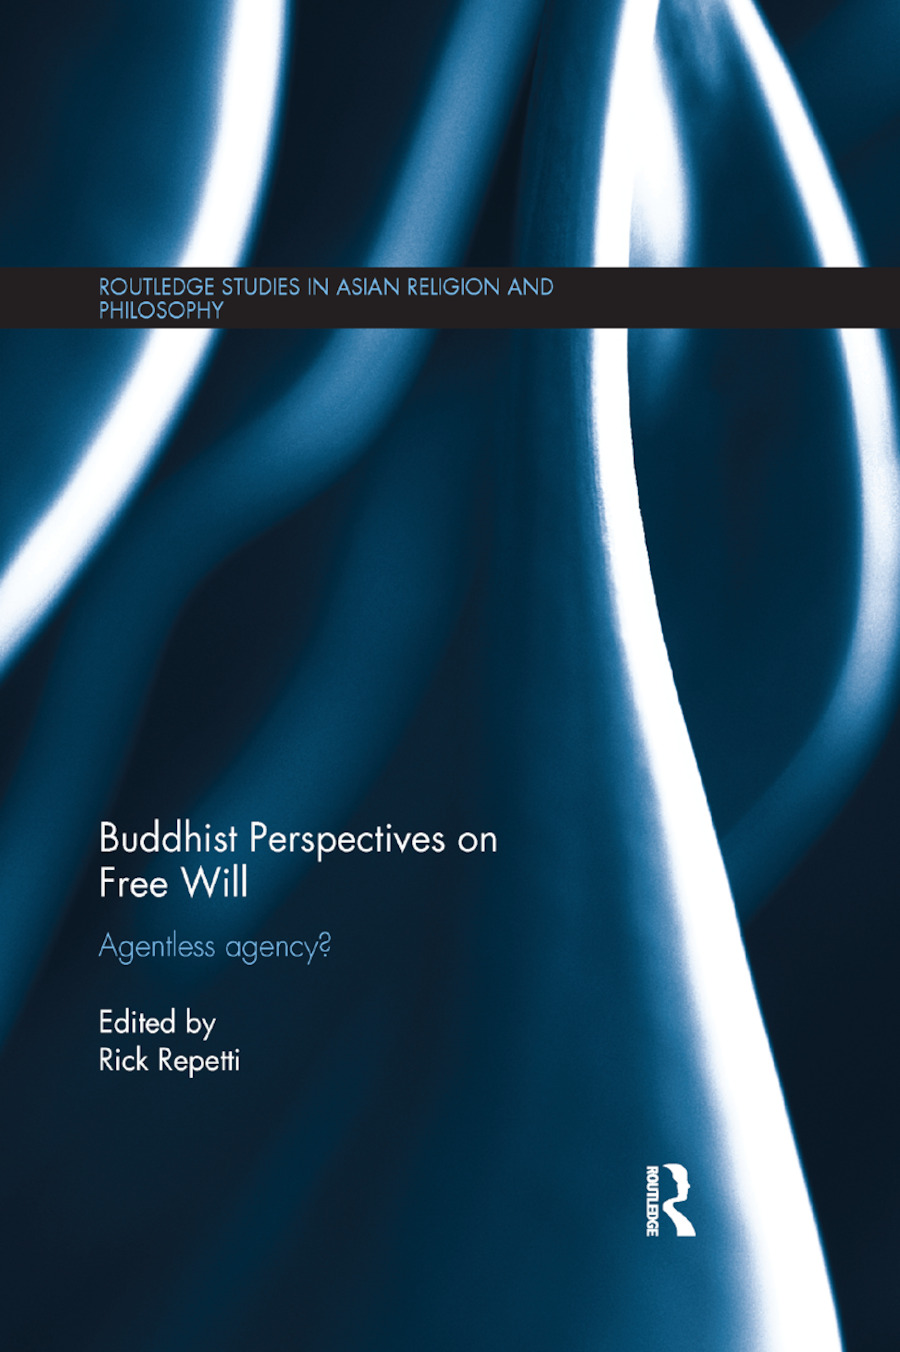 Buddhist Perspectives on Free Will